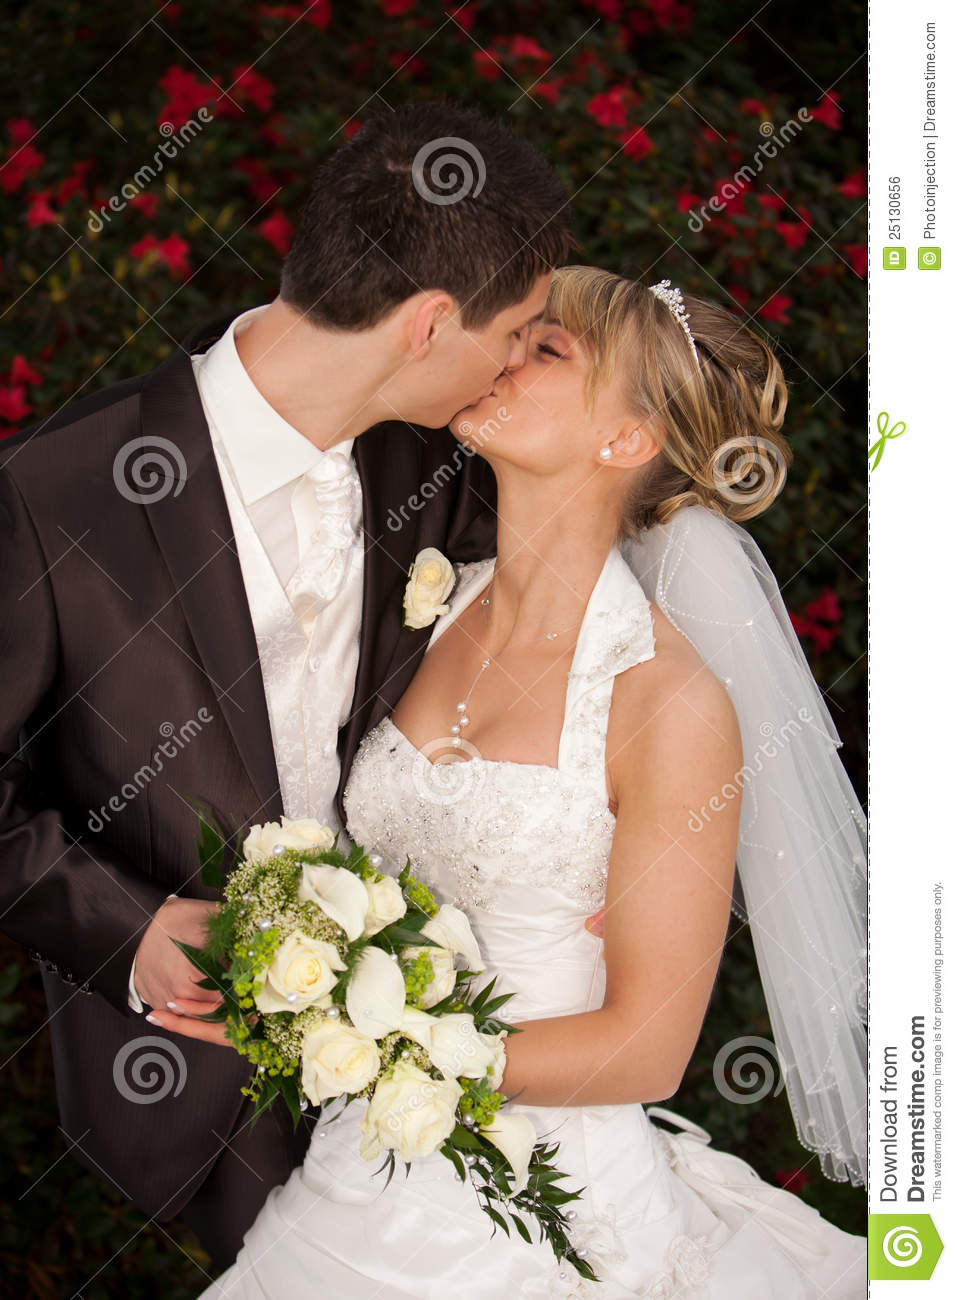 Tender wedding kiss red roses royalty free stock image image royalty free stock photo download tender wedding kiss junglespirit Image collections